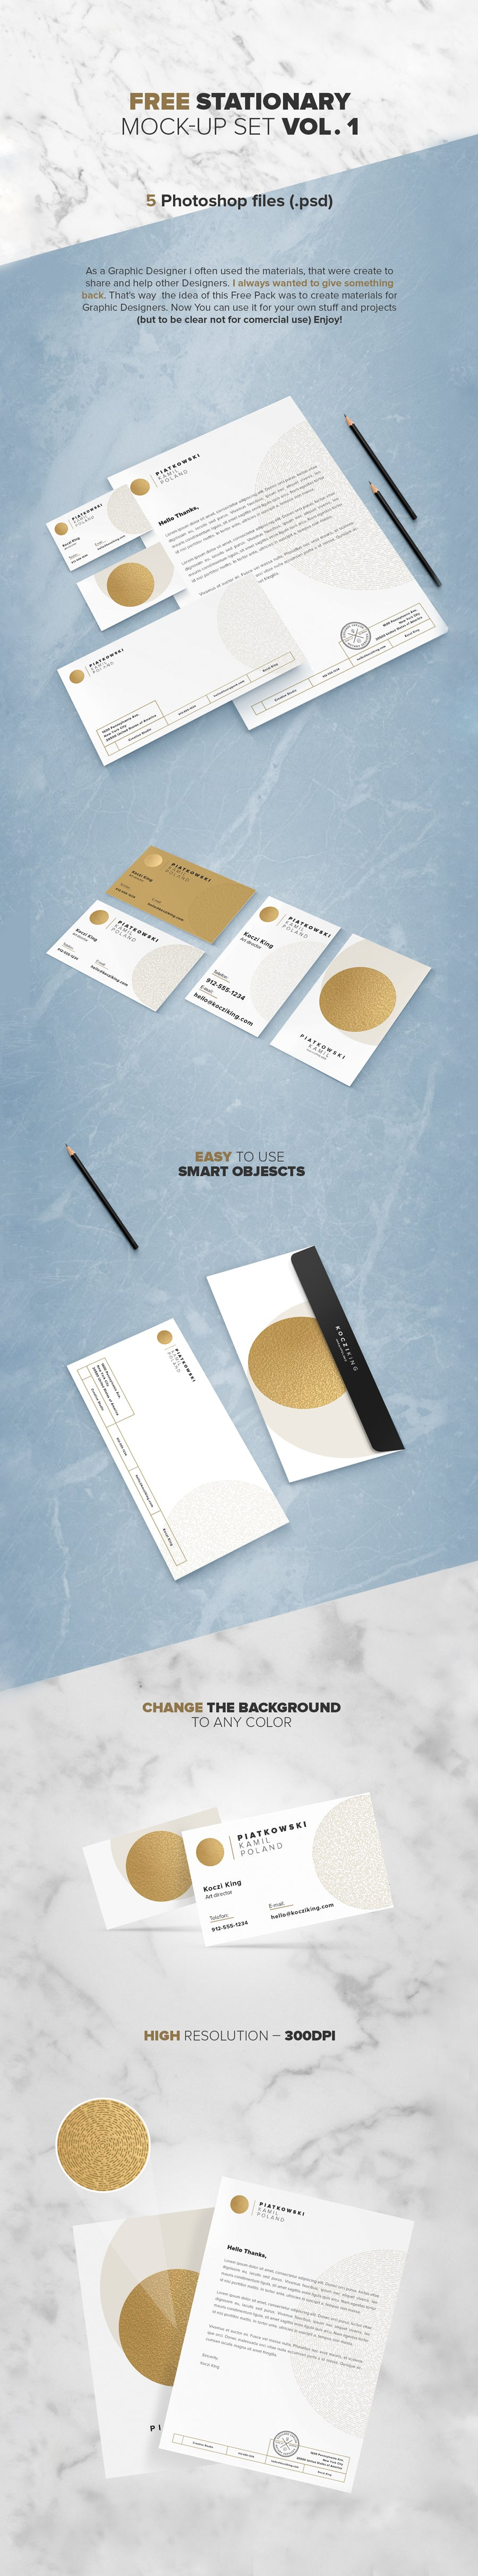 psd business card mockups all free mockups branding stationery stationary mock up set multiple views and angles